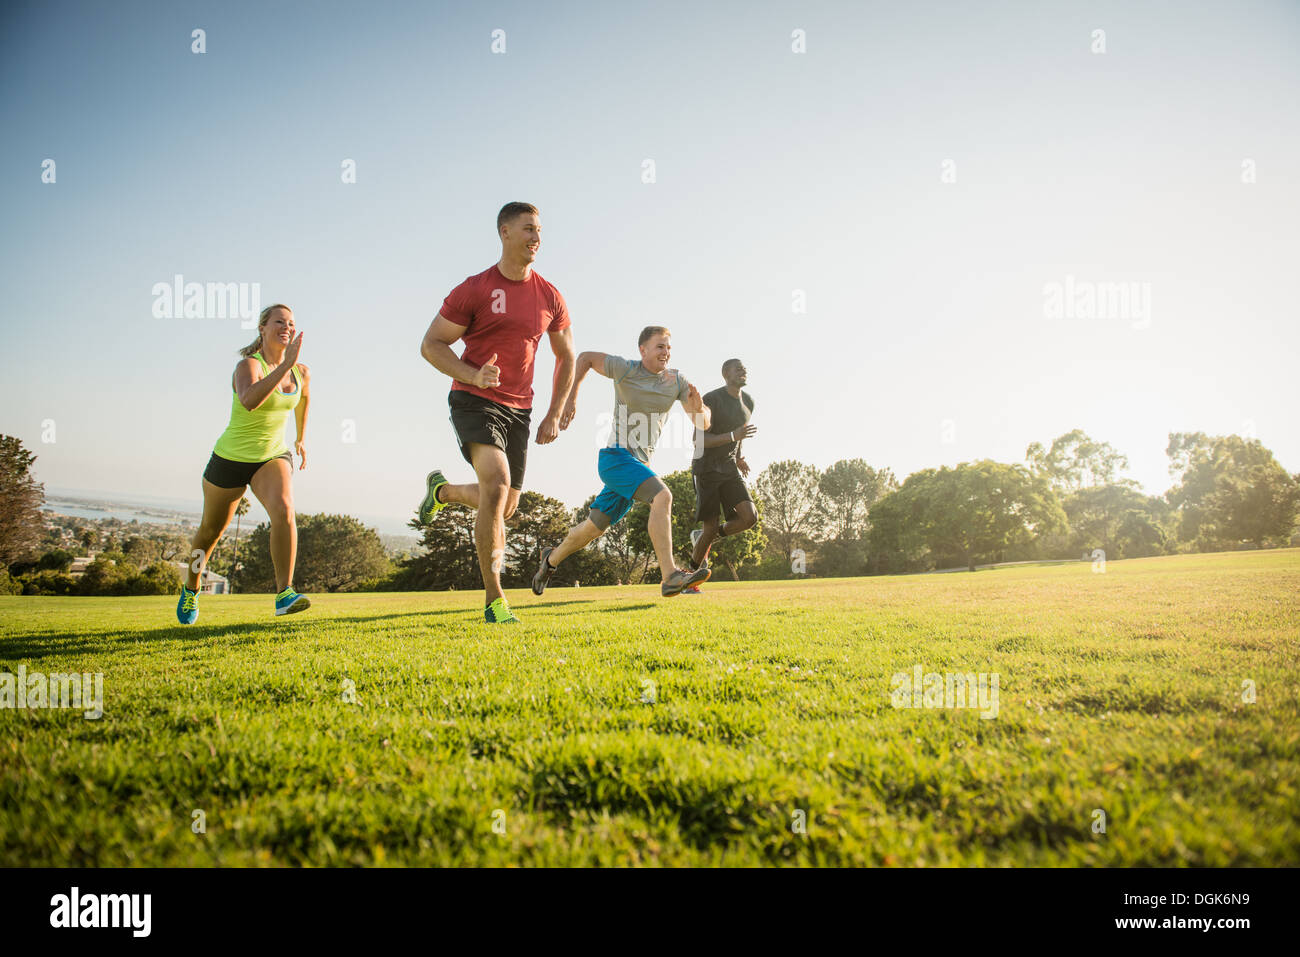 Group of young adults on training run in field - Stock Image